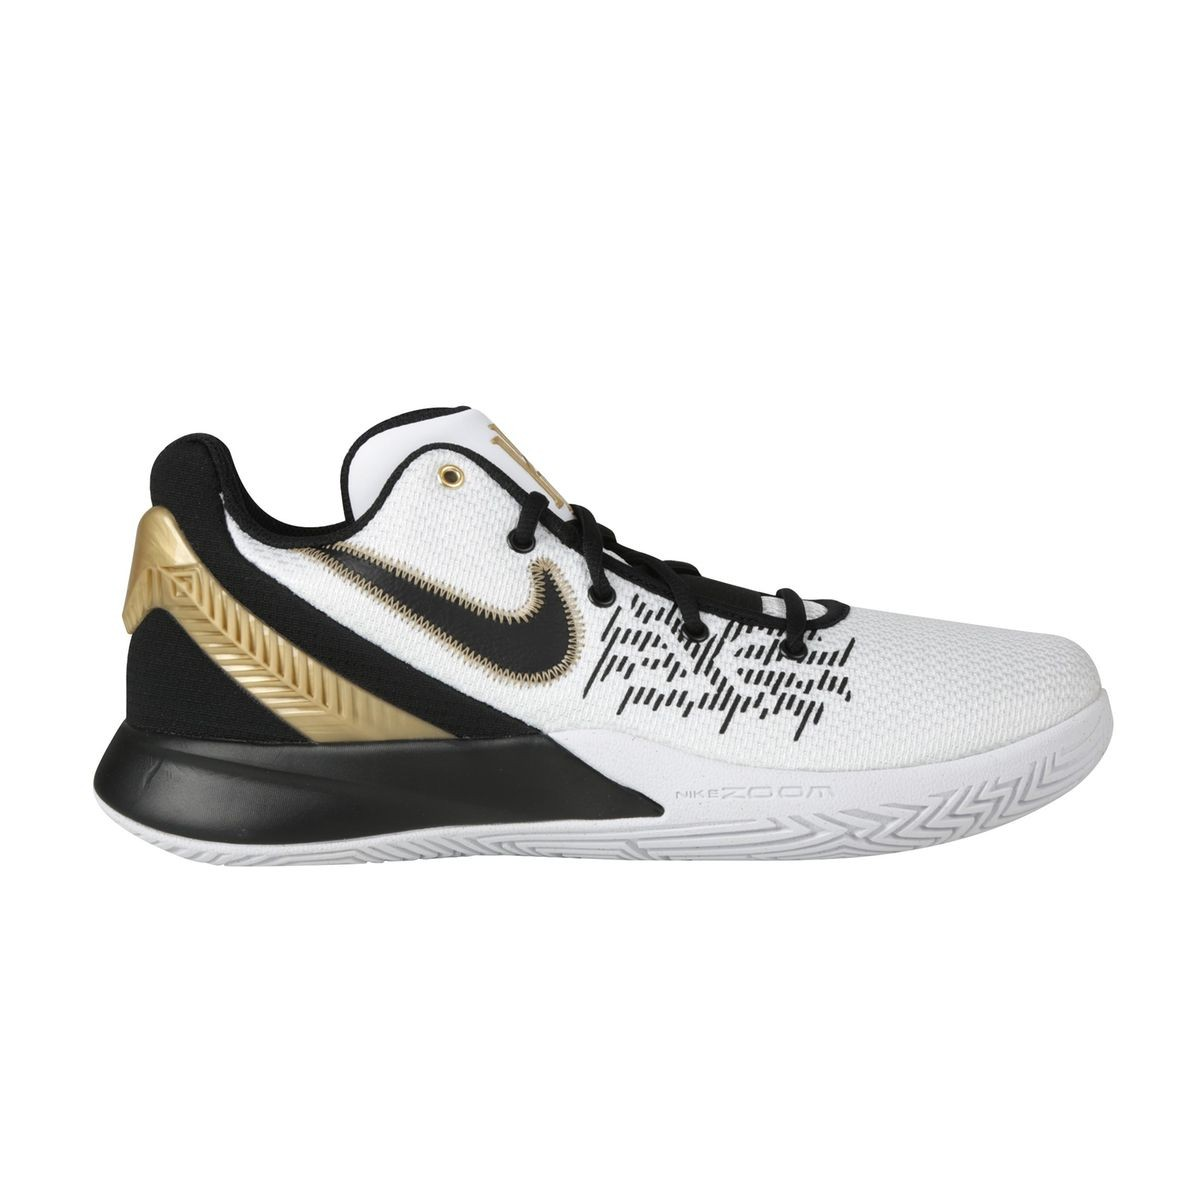 various colors f1c40 4b735 Chaussures Basketball Nike Kyrie Flytrap Ii Blanc noir - Taille   40 41